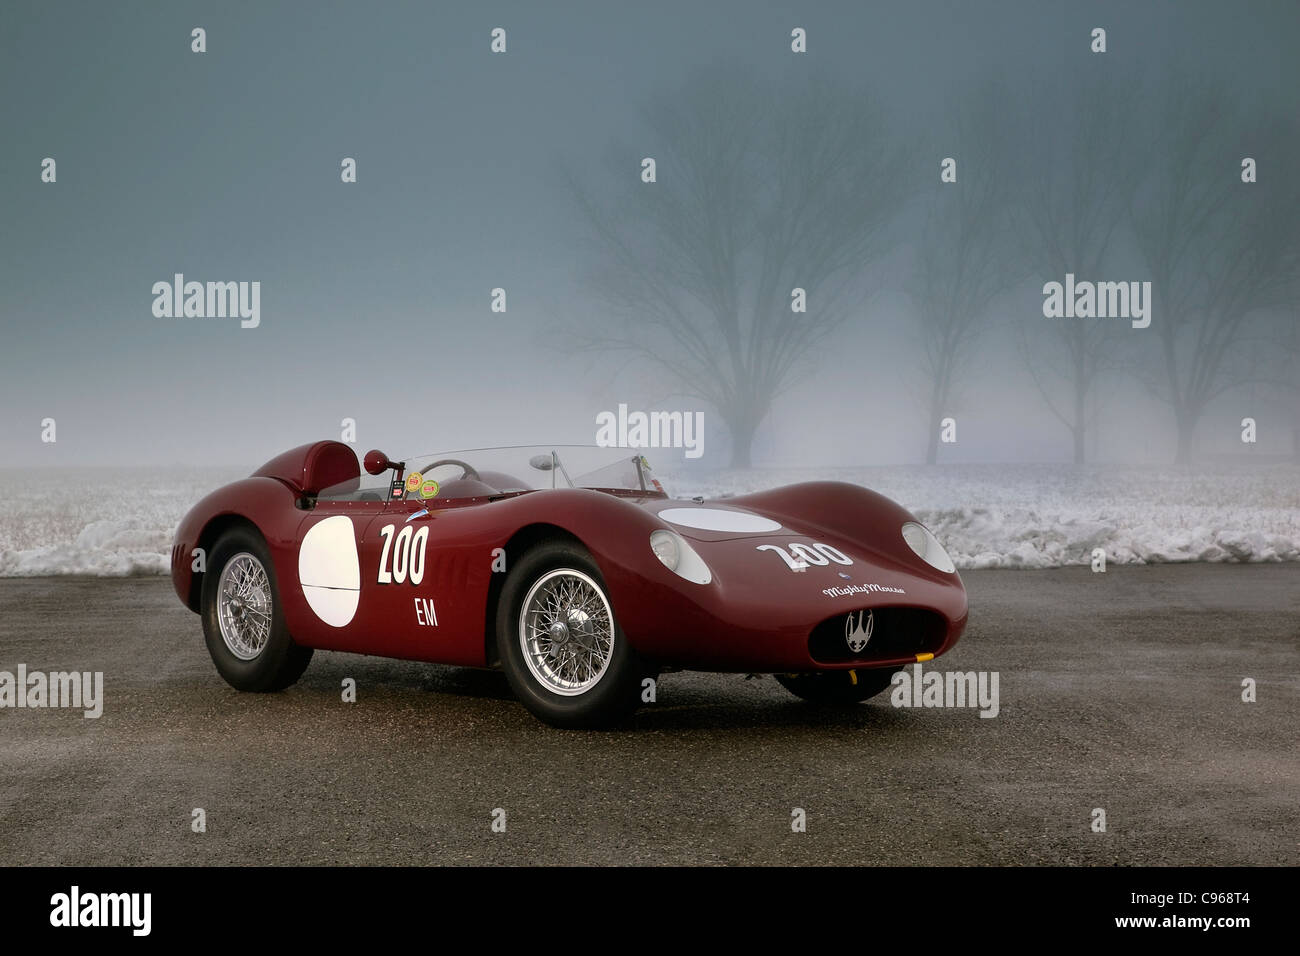 Maserati S Sports Racing Car Stock Photo Royalty Free